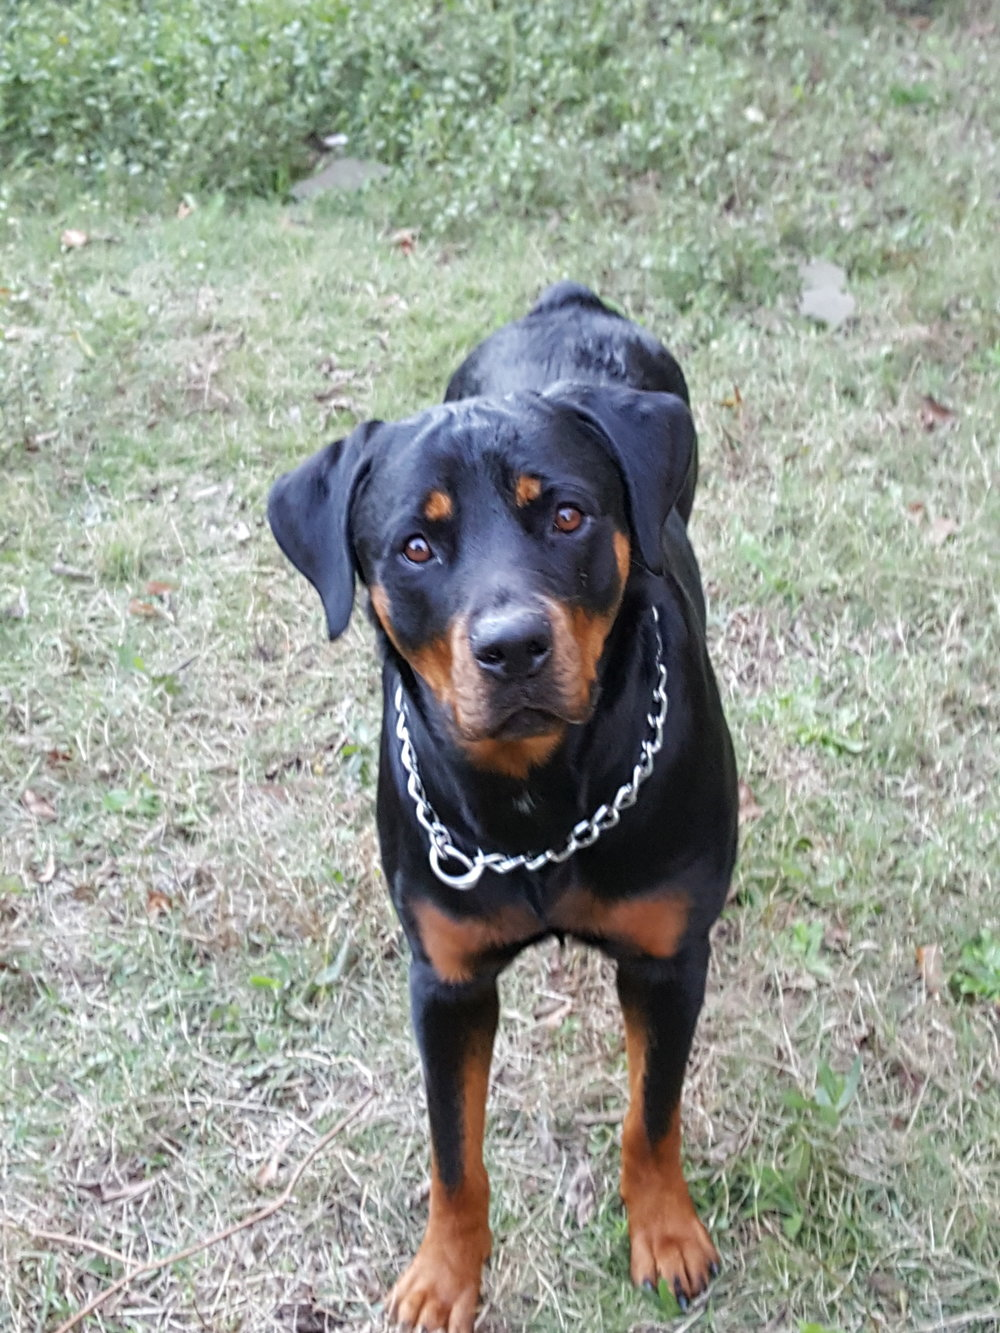 Stormy is a striking 1.5 year old Rottweiler girl.